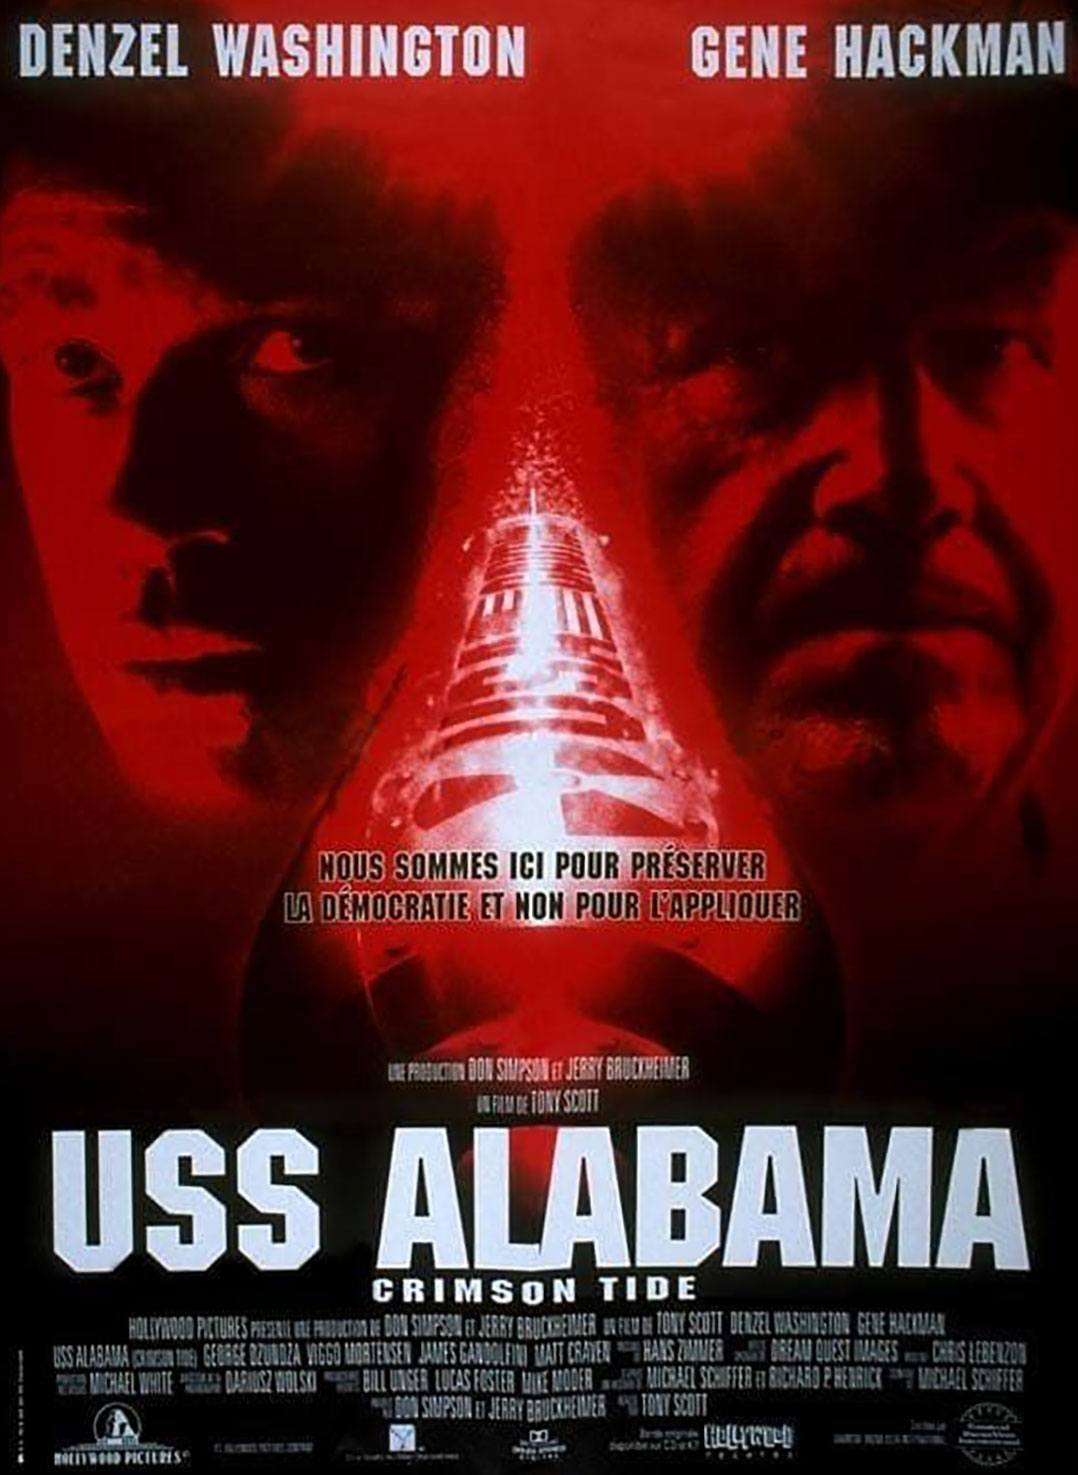 affiche poster uss alabama crimson tide disney hollywood